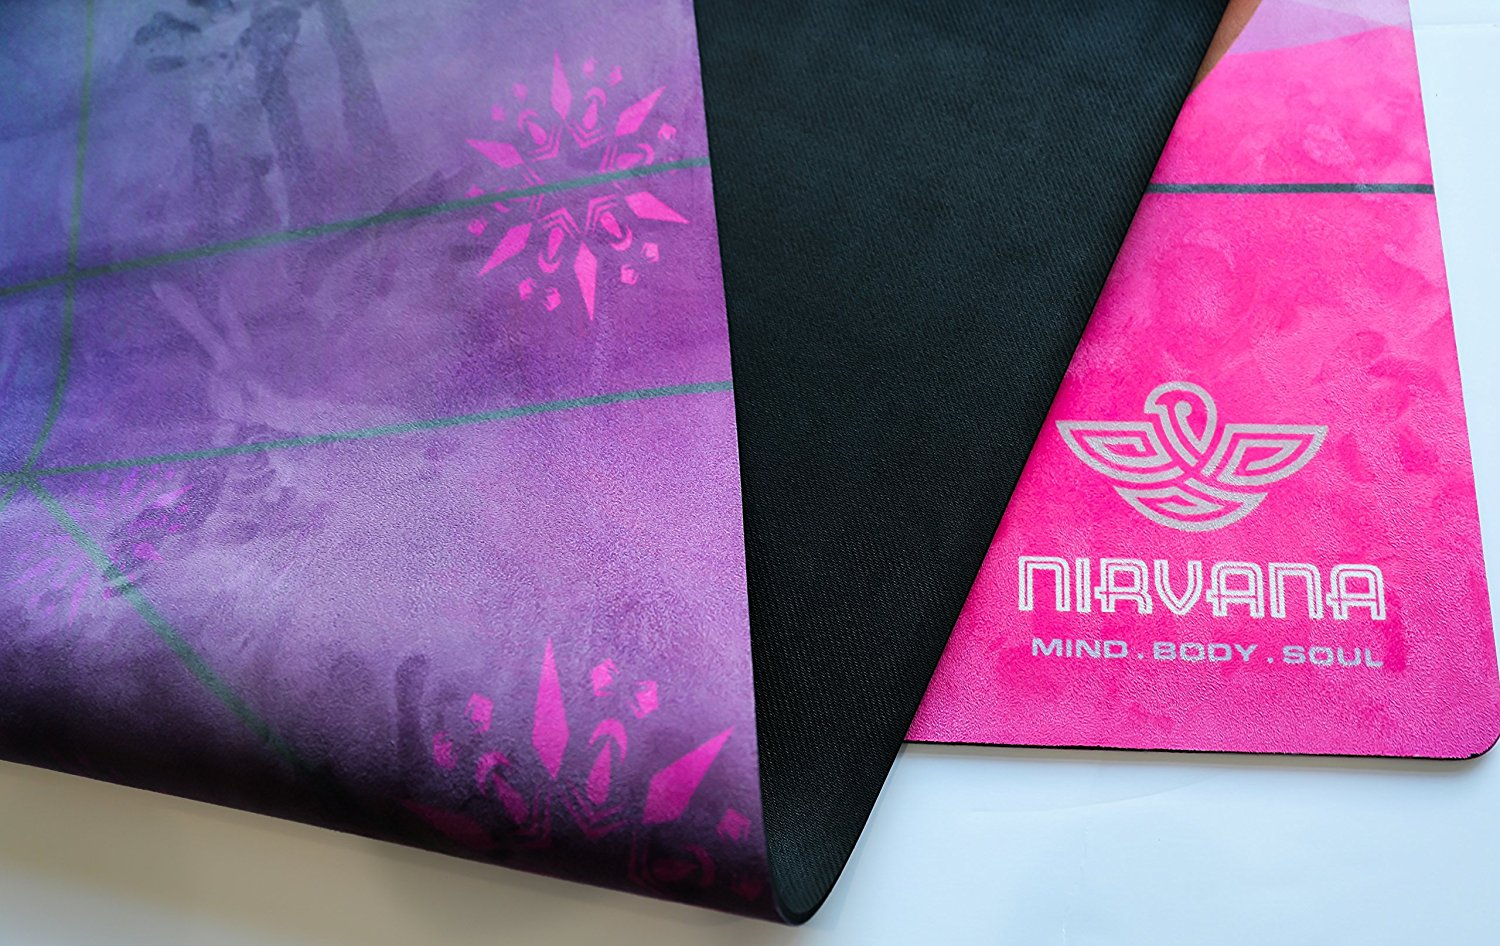 NIRVANA Pro YOGA MAT, Large Yoga Mat , Thick Yoga Mat, Non Slip Yoga Mat, Natural Rubber Yoga Mat, Beautiful Design, Eco Friendly Yoga Mat, Non Toxic Yoga Mat Towel Combo comes with a Yoga Bag.